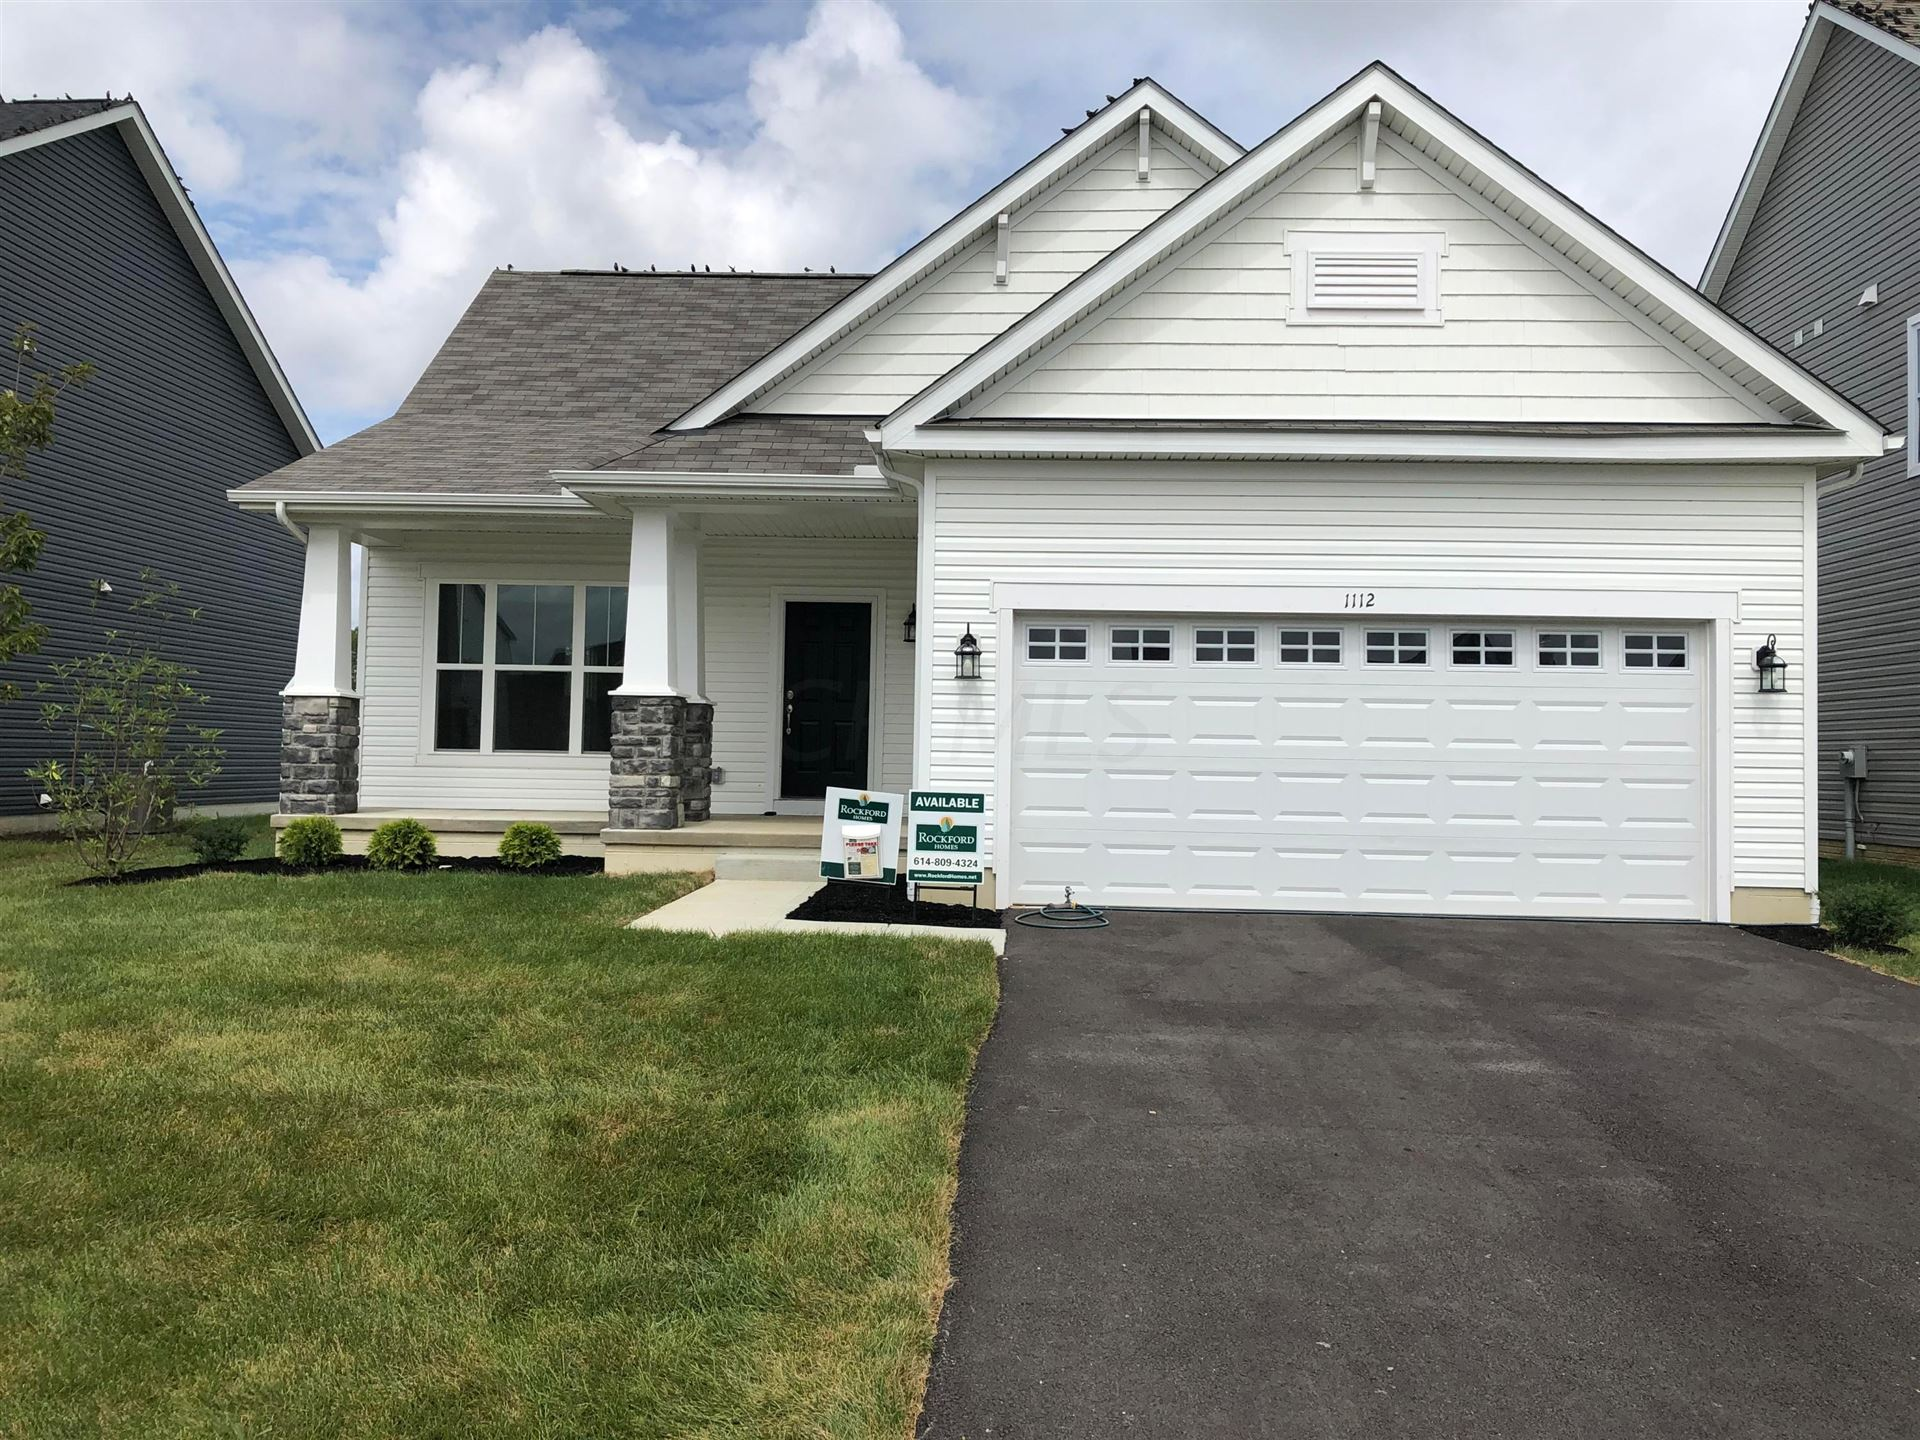 1112 Ayrshire Drive, Obetz, OH 43207 - #: 219035205